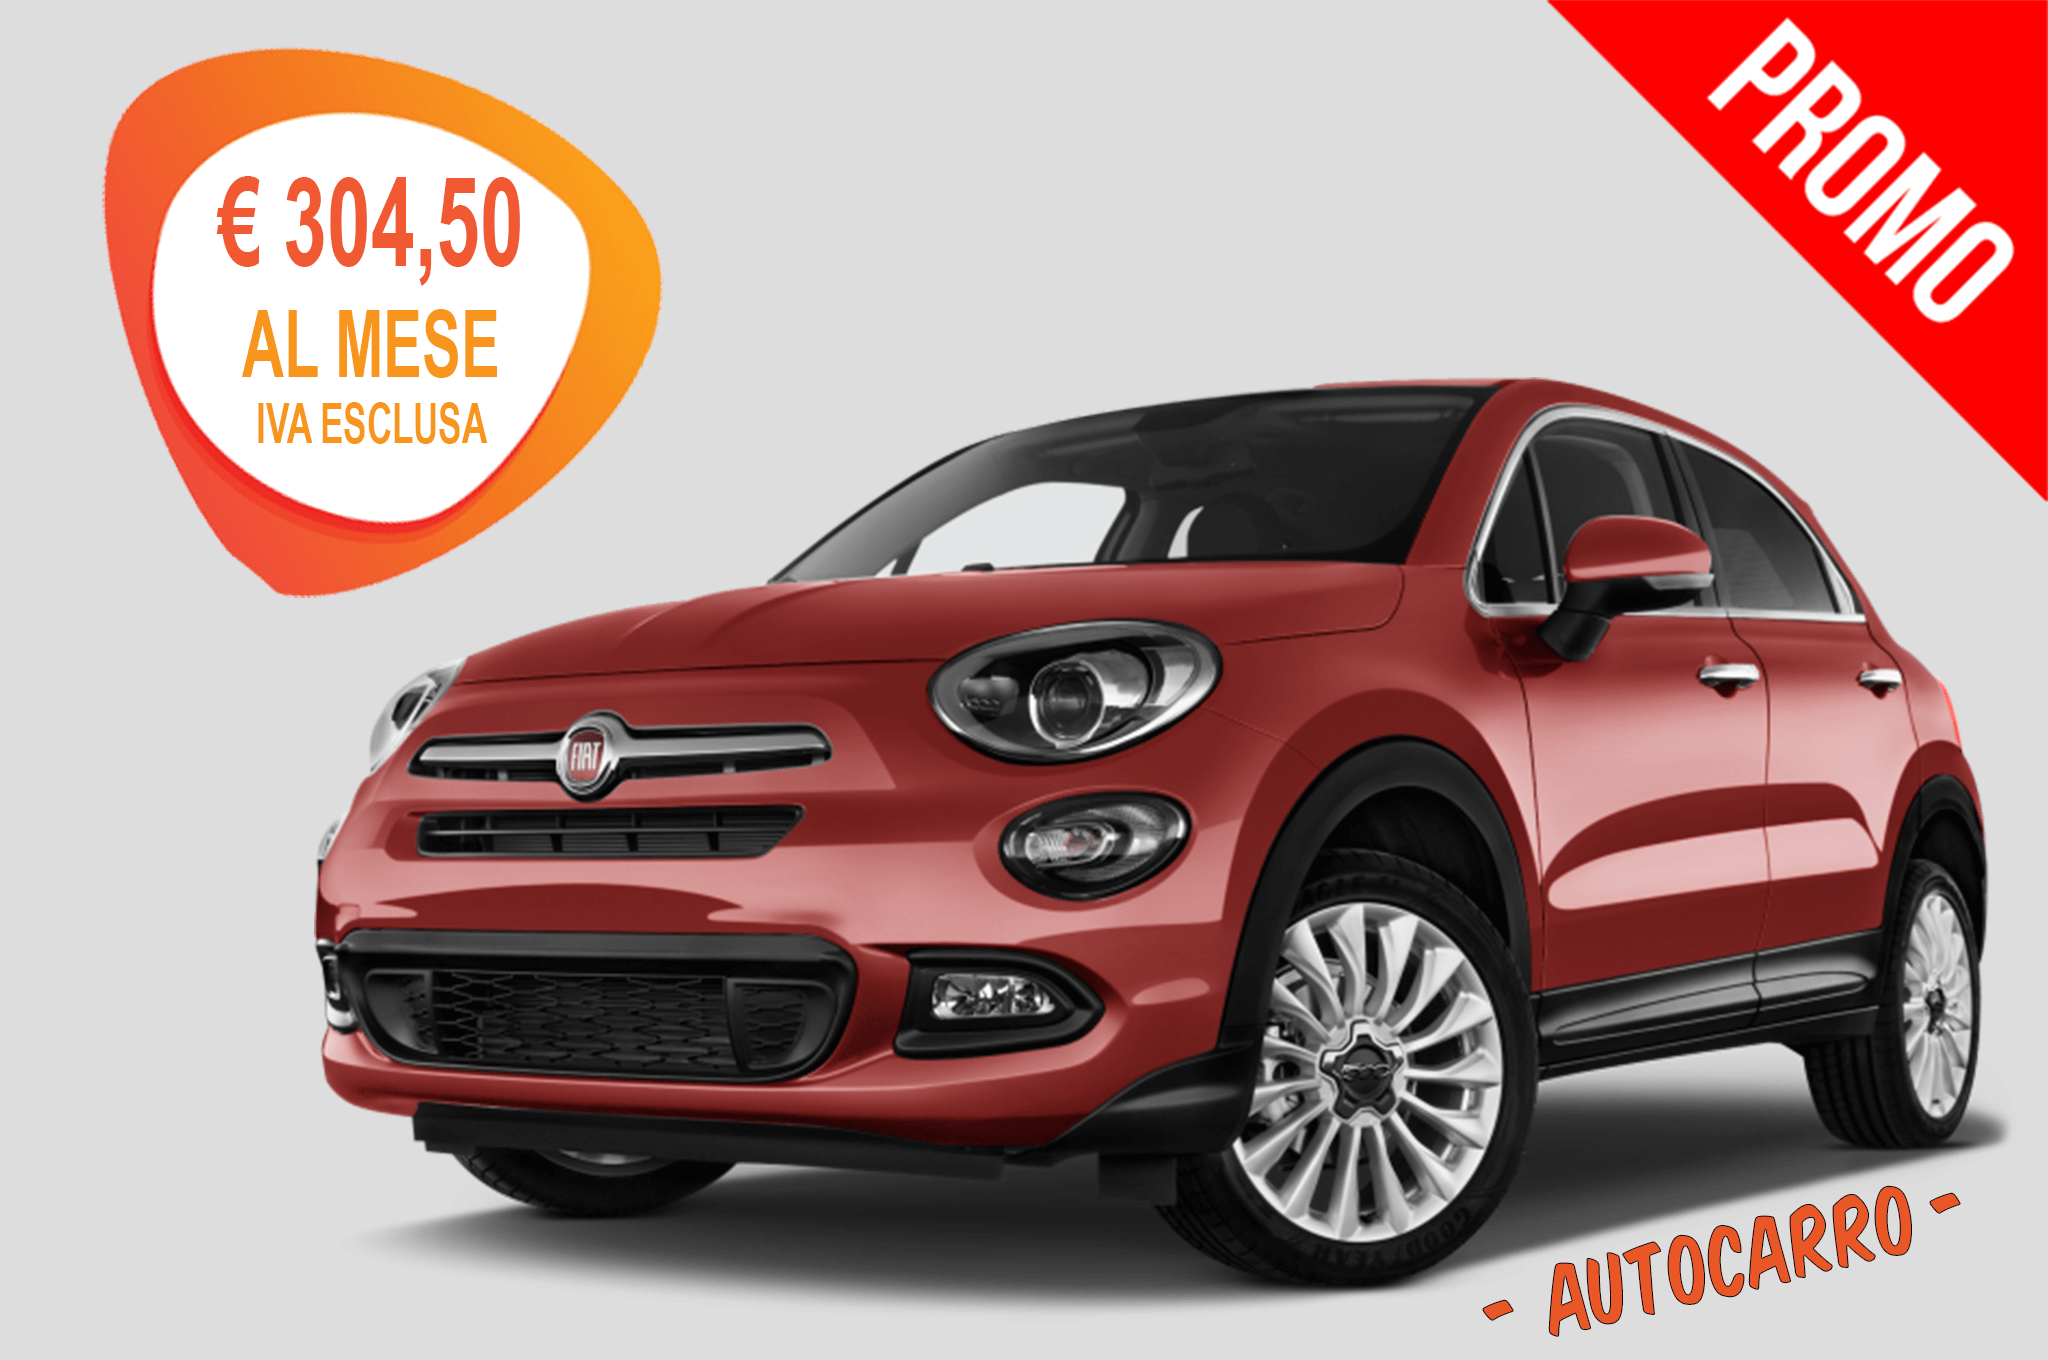 FIAT 500X N1 1.6 Mjet 120cv 4x2 Business